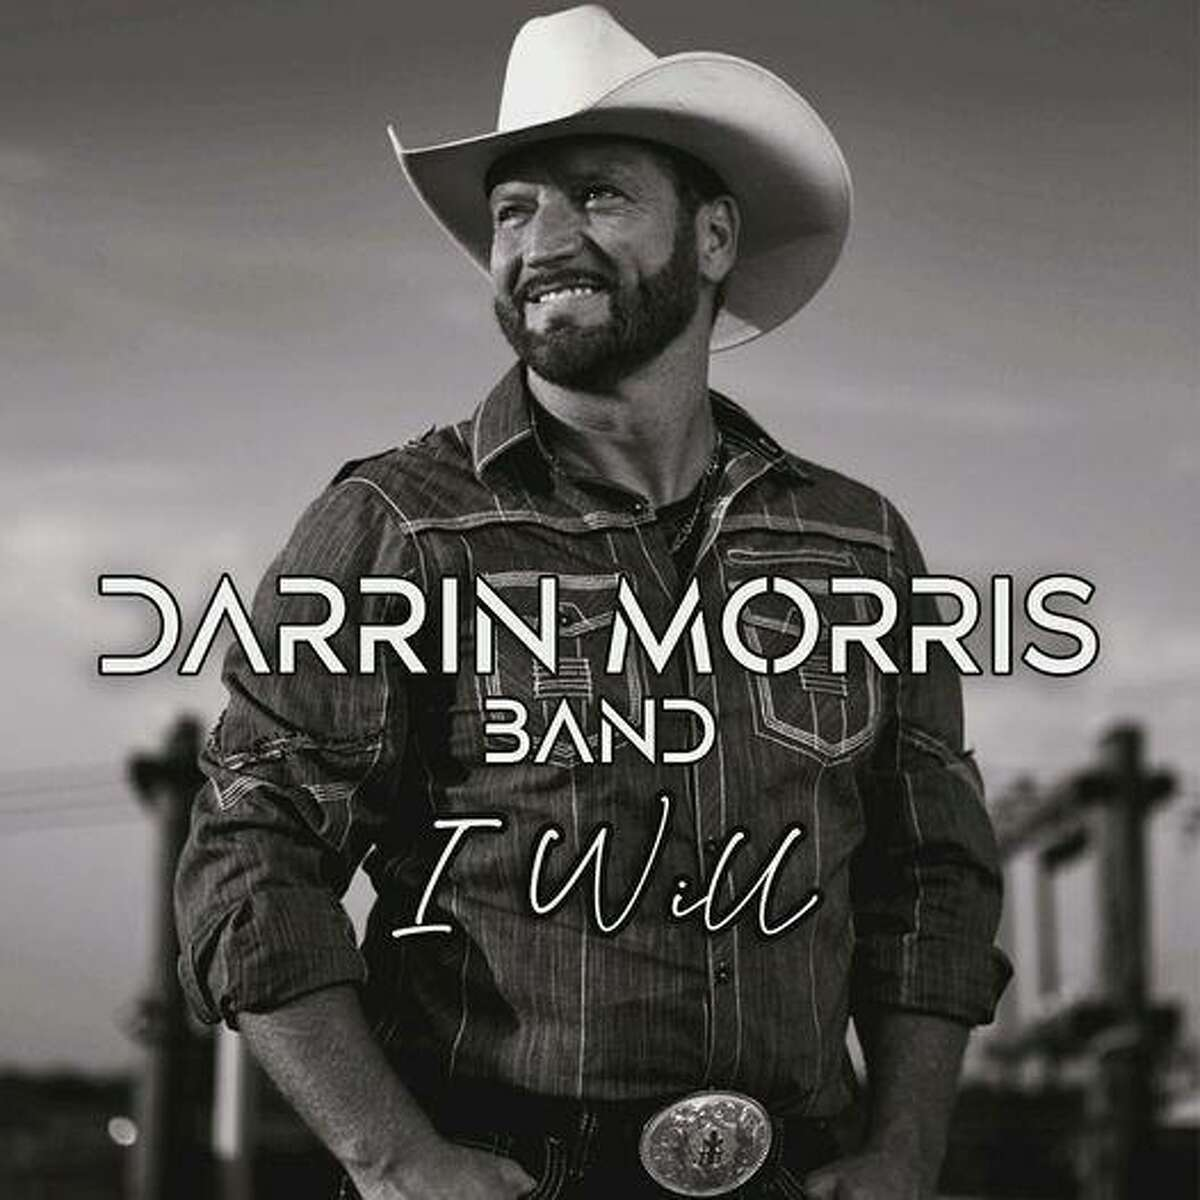 """Darrin Morris Band released """"I Will"""" to radio on Oct. 15 and it is already receiving a positive response from country music fans who are calling it """"sexy,"""" """"sultry,"""" and """"next-level greatness."""""""